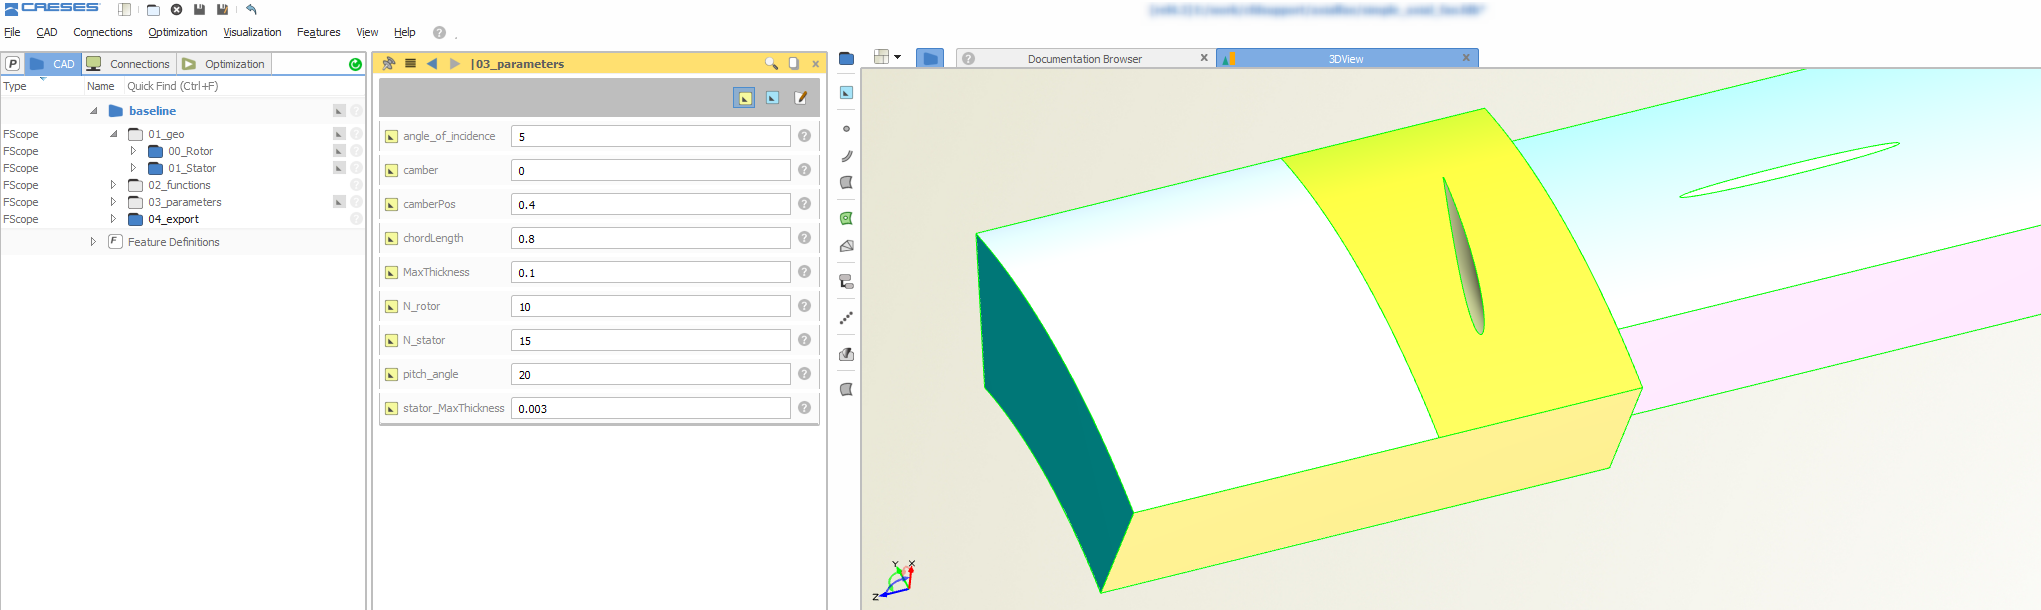 Fully-parametric axial fan model in CAESES, including periodic flow domain for CFD